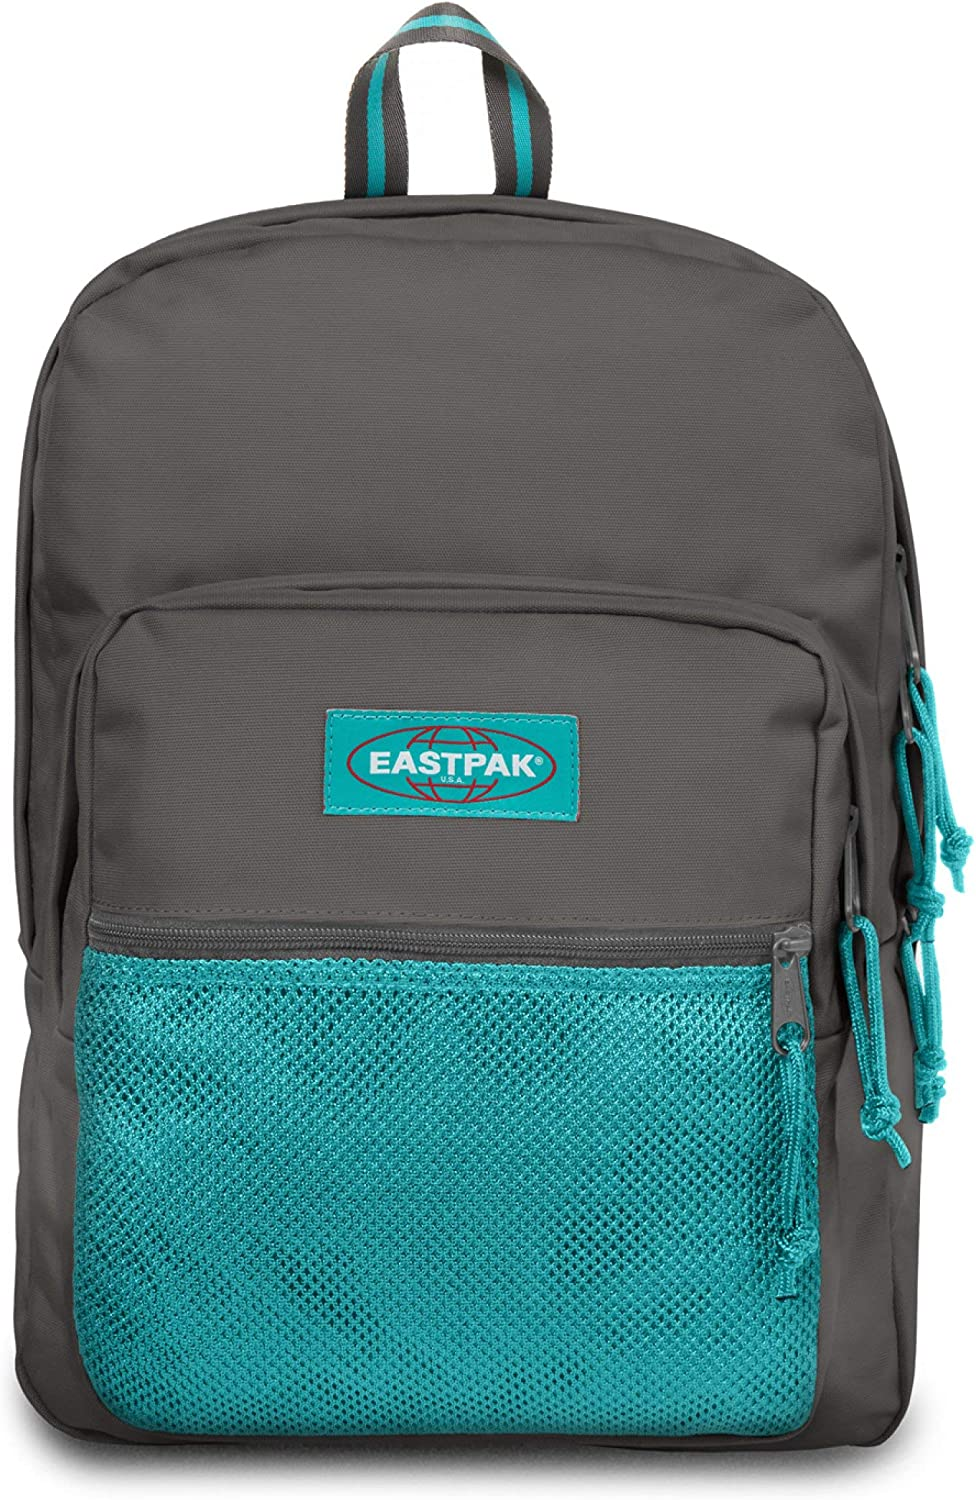 Eastpak Pinnacle Sac à Dos, 42 cm, 38 L, Gris (Blakout Whale)